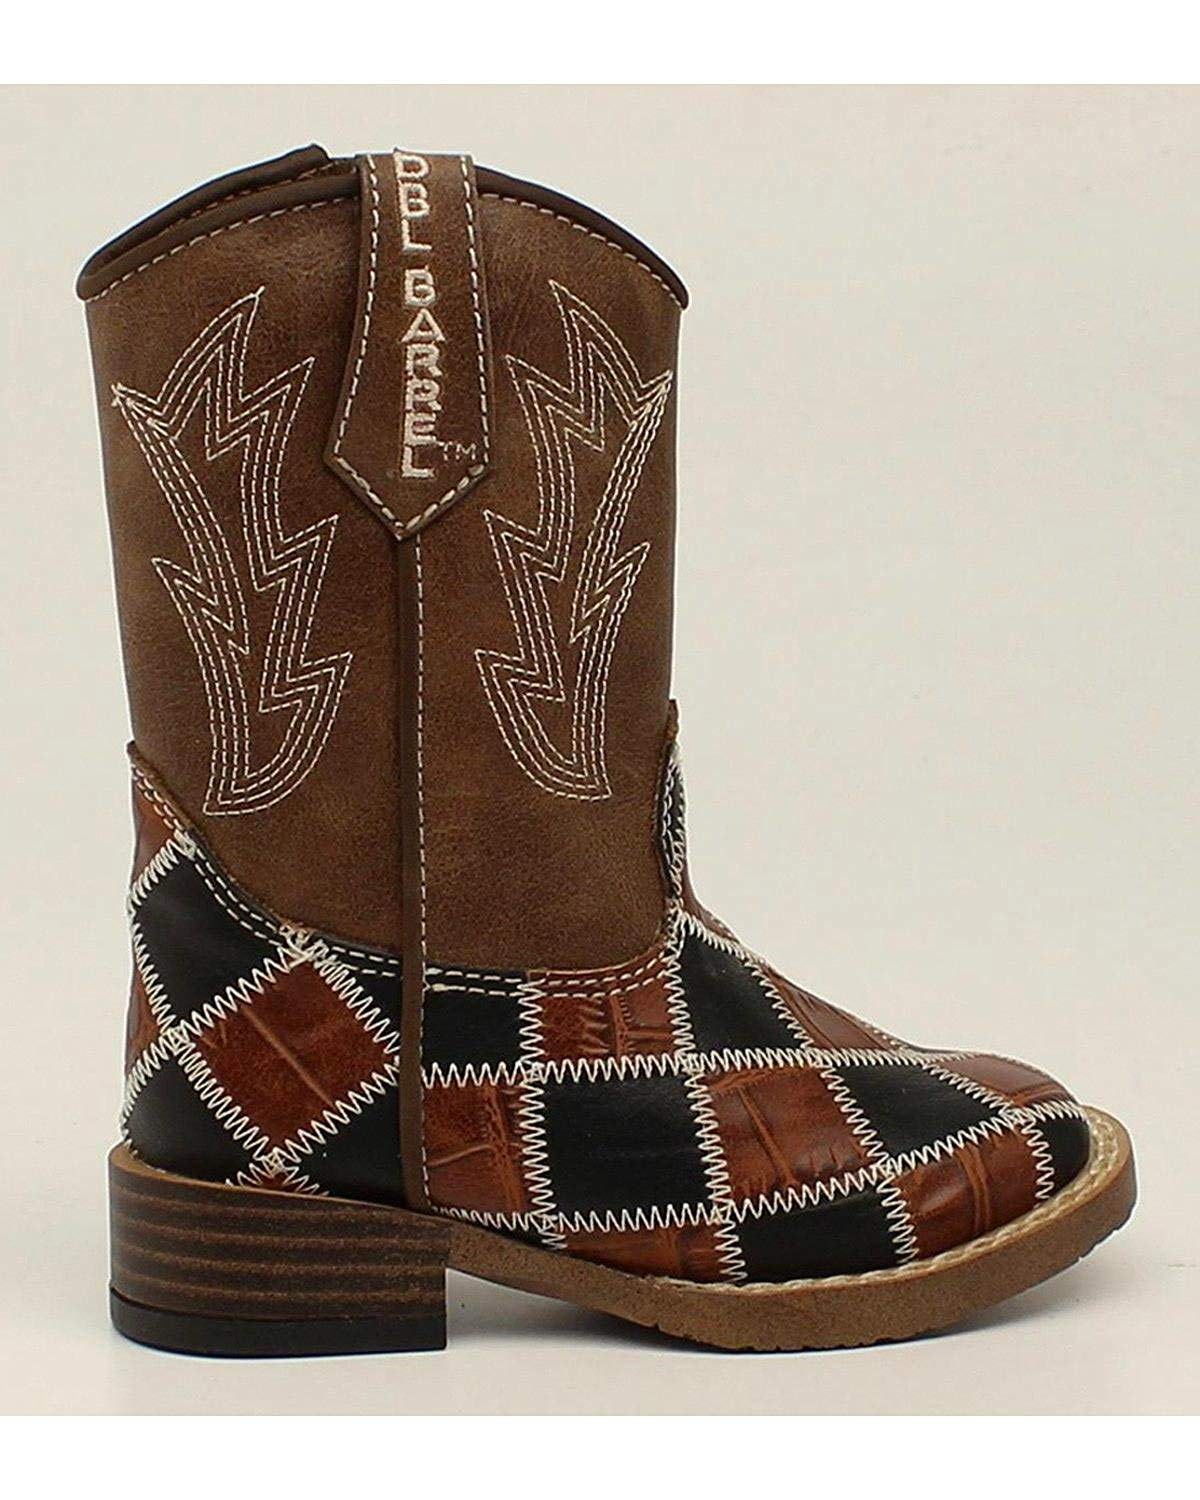 Double Barrel Toddler-Boys' Andy Cowboy Boot Square Toe Brown 4 US